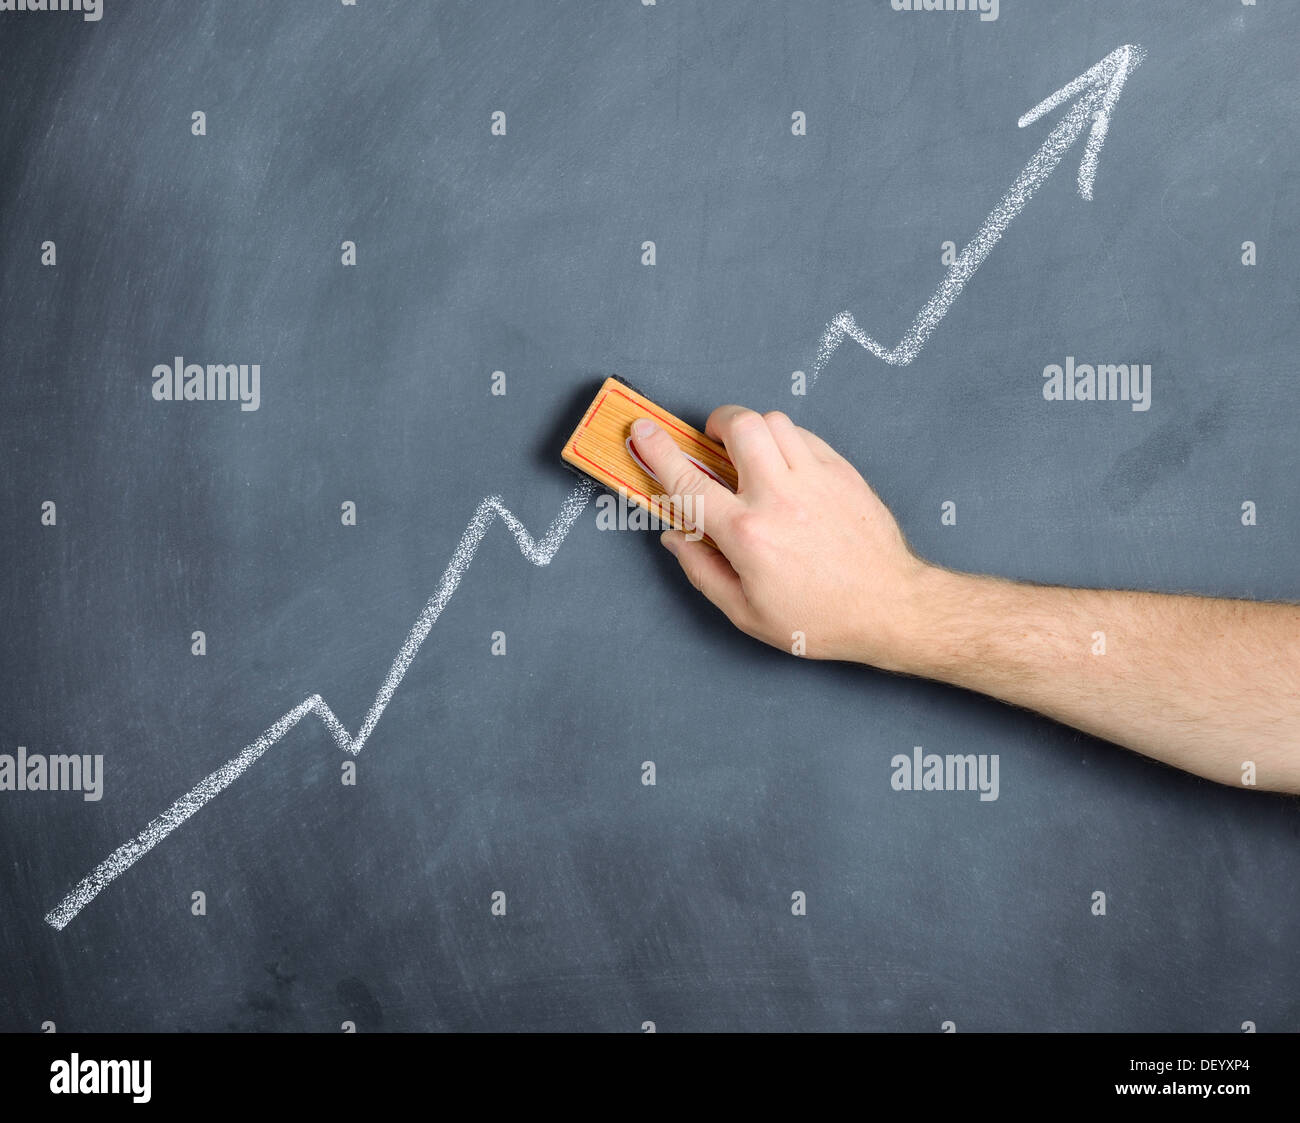 concept of profit or shares wiped out - Stock Image